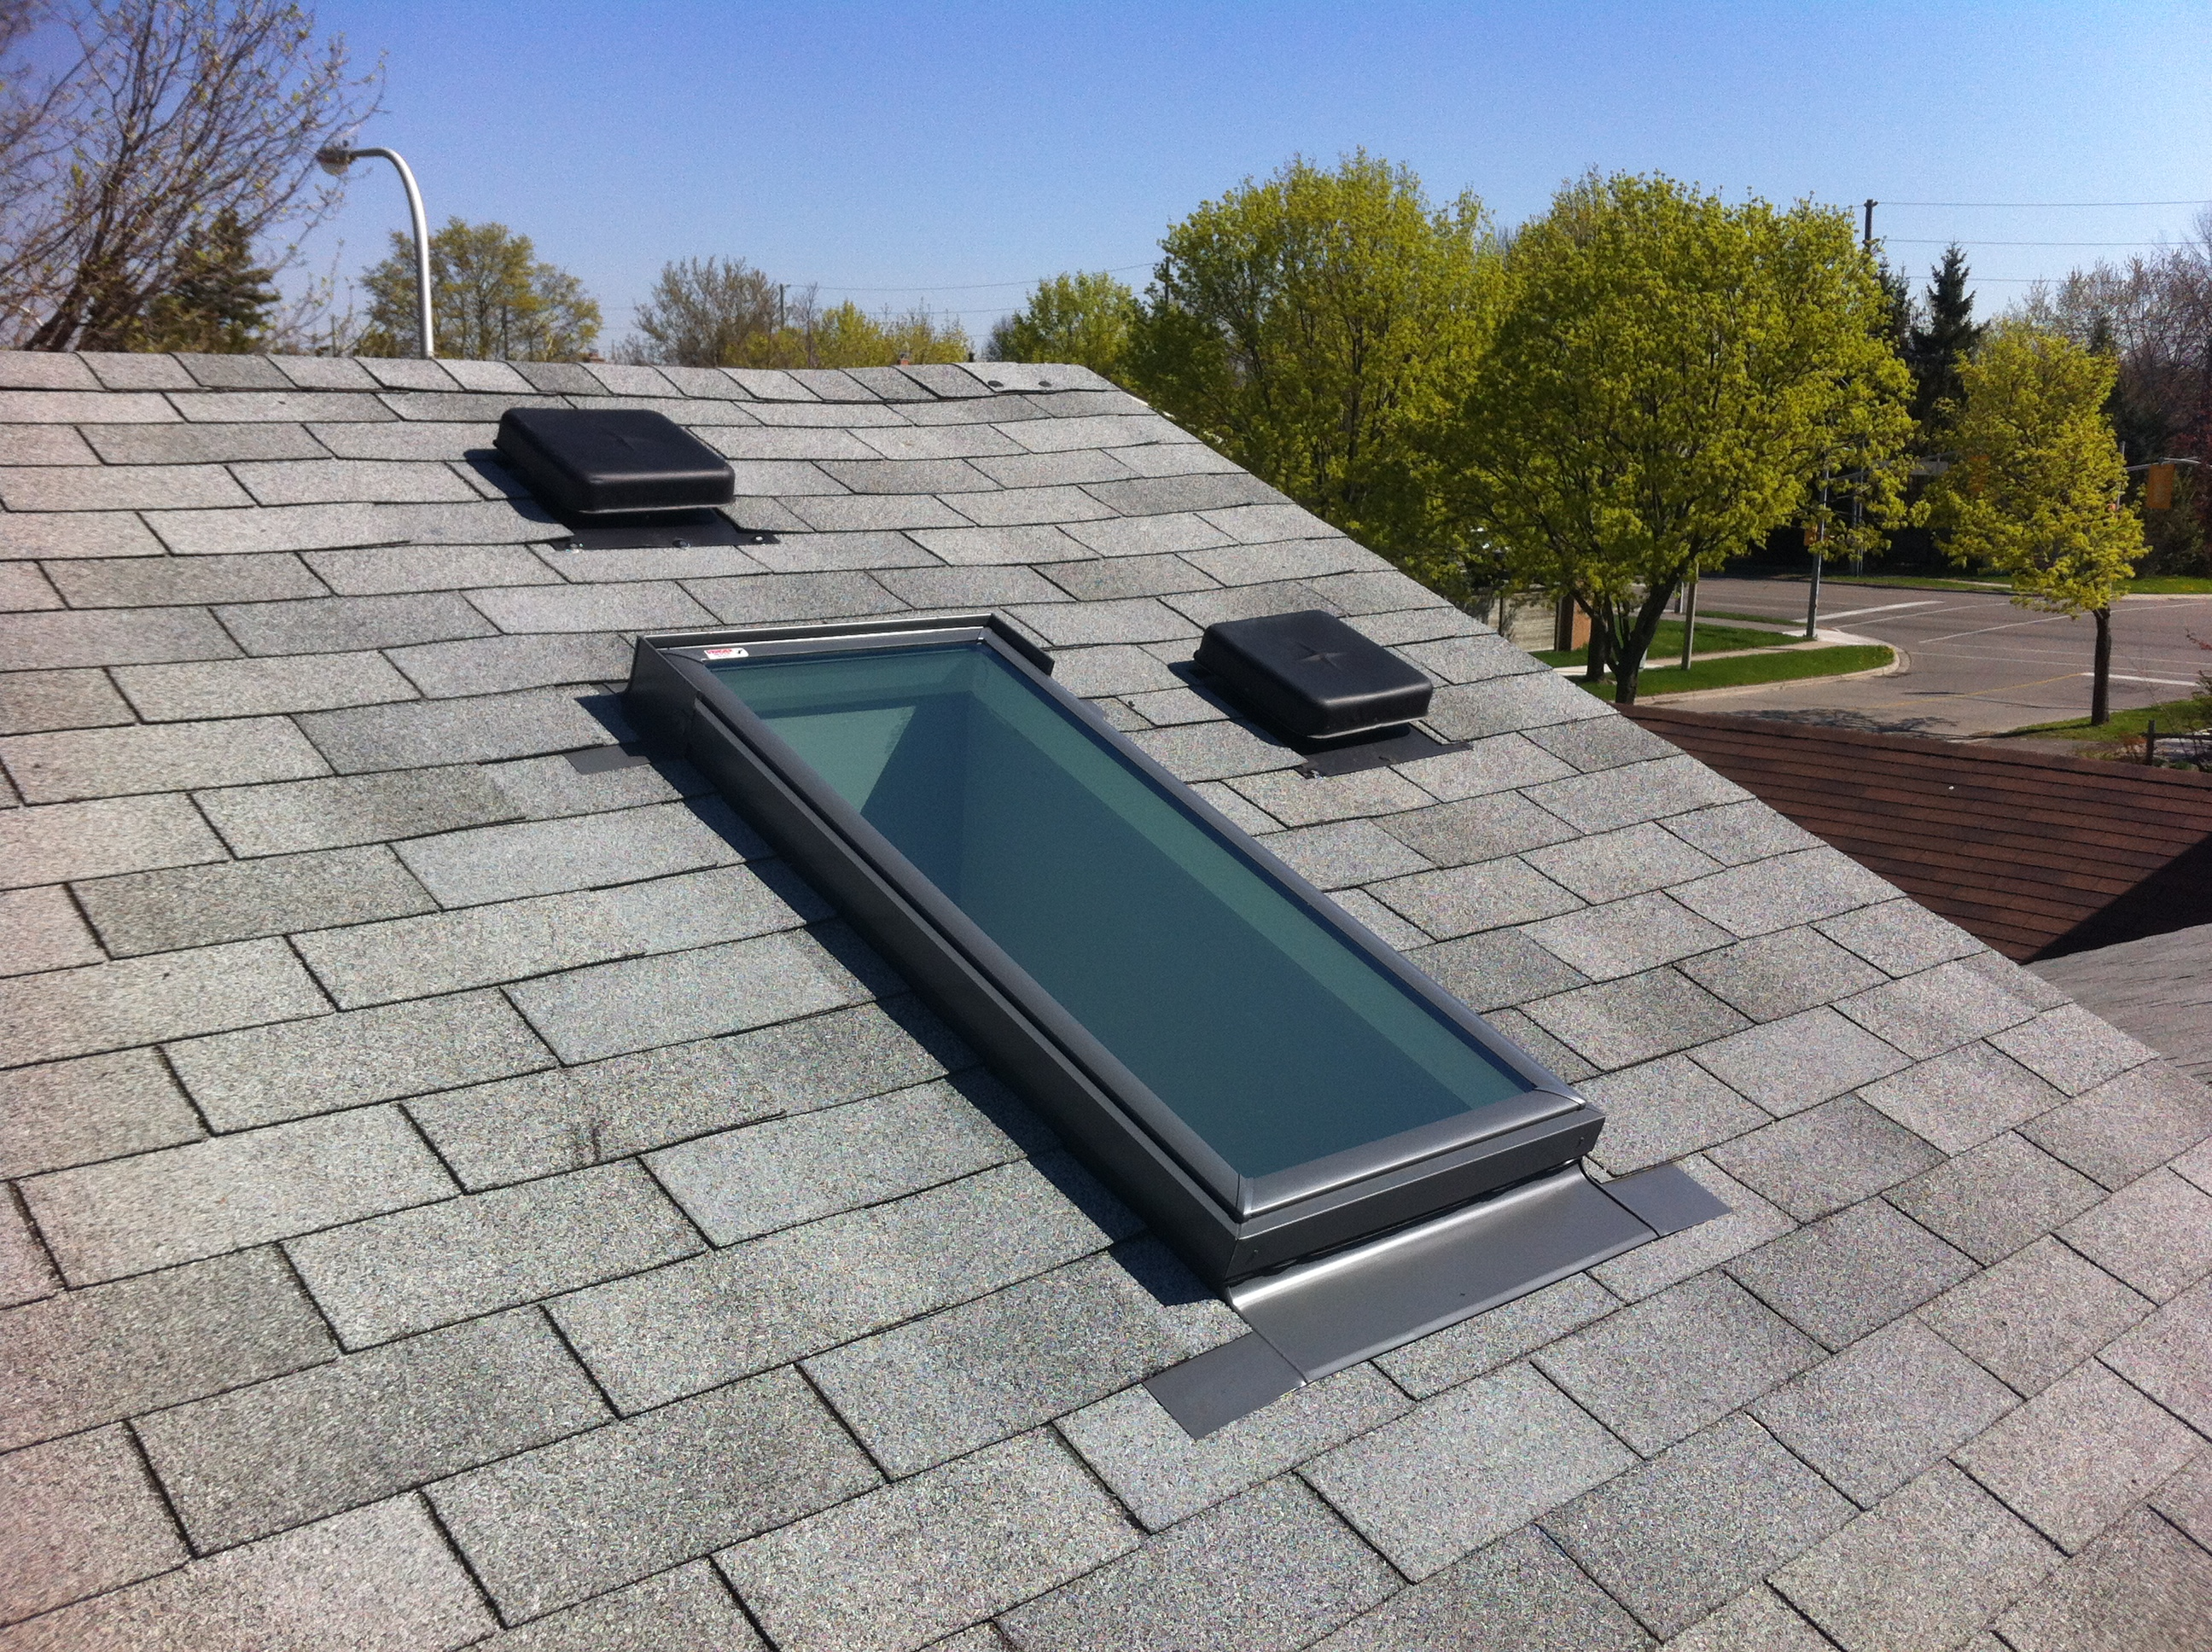 Velux Skylight - Roof Work